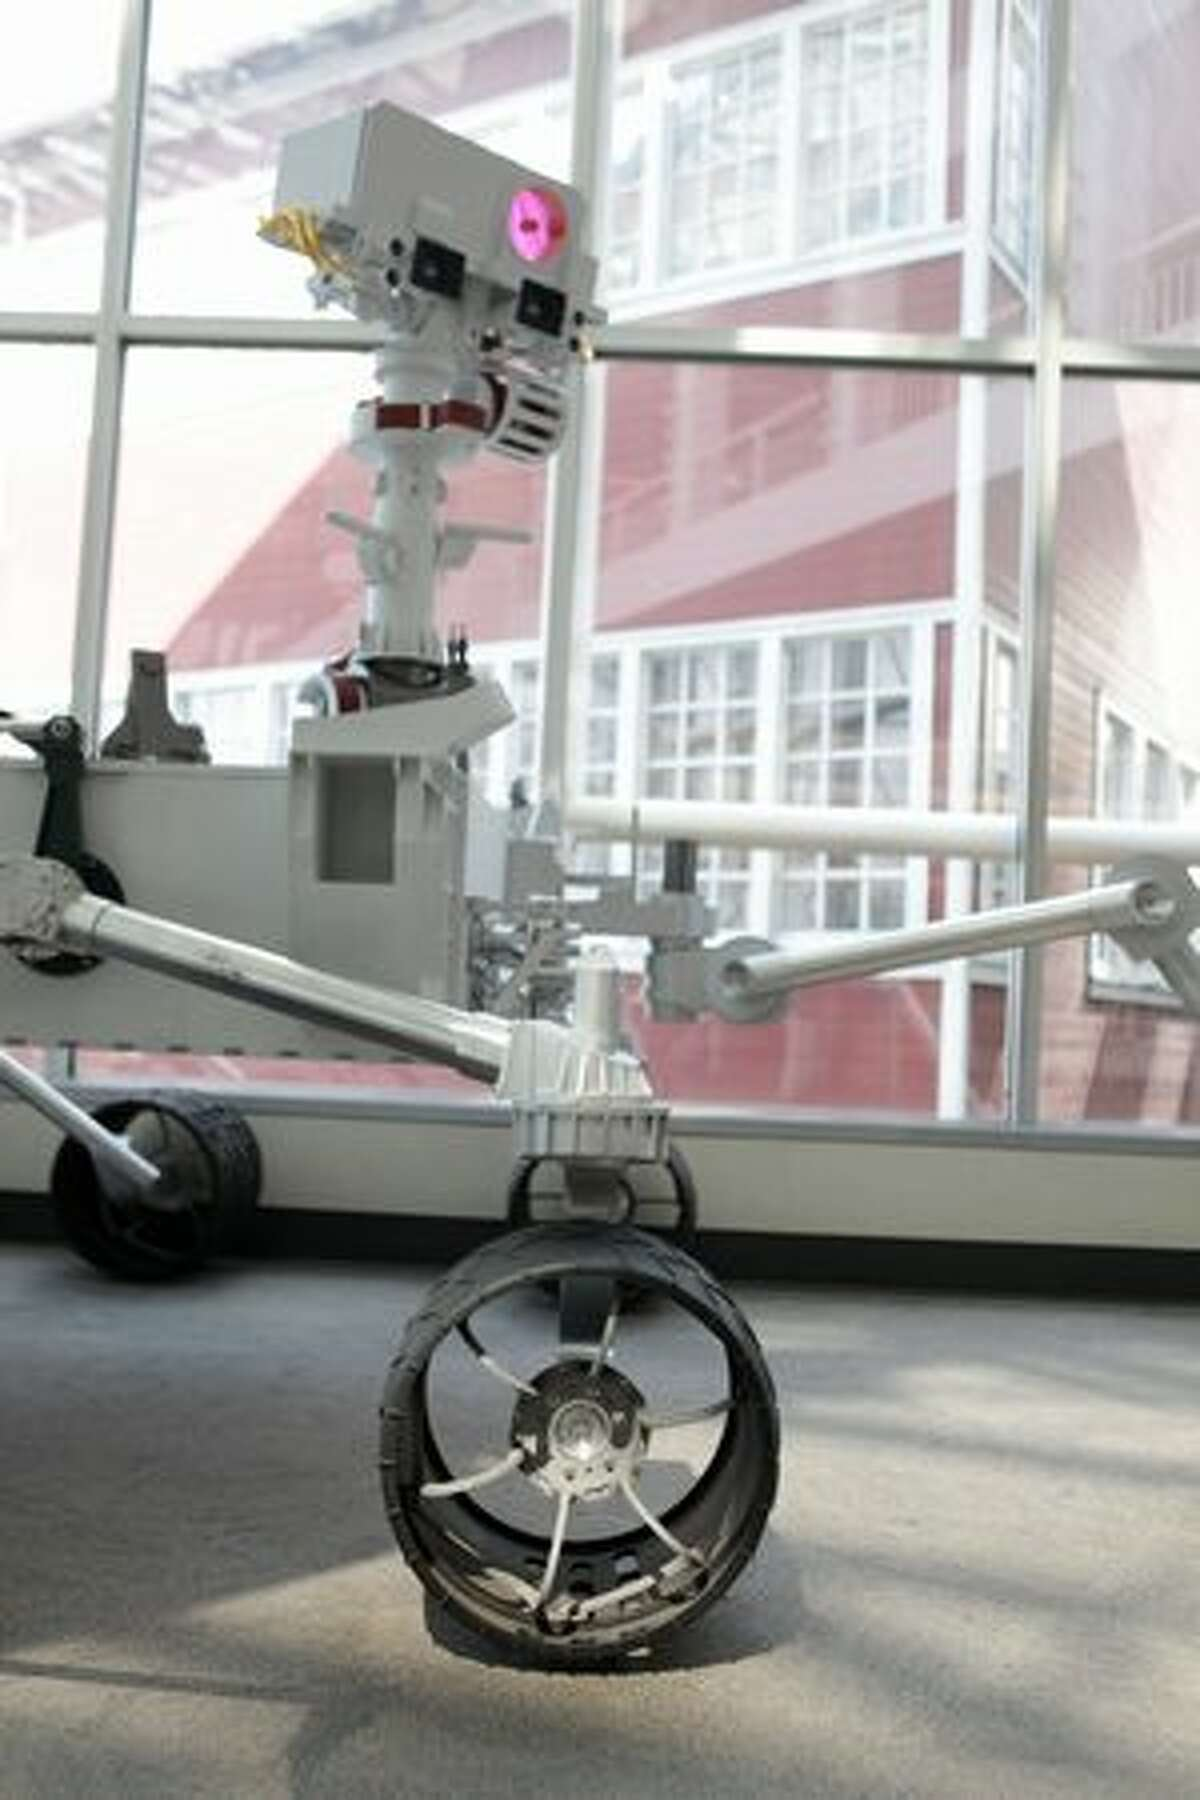 The wheel and camera mast of a full-scale model of NASA's new Mars rover